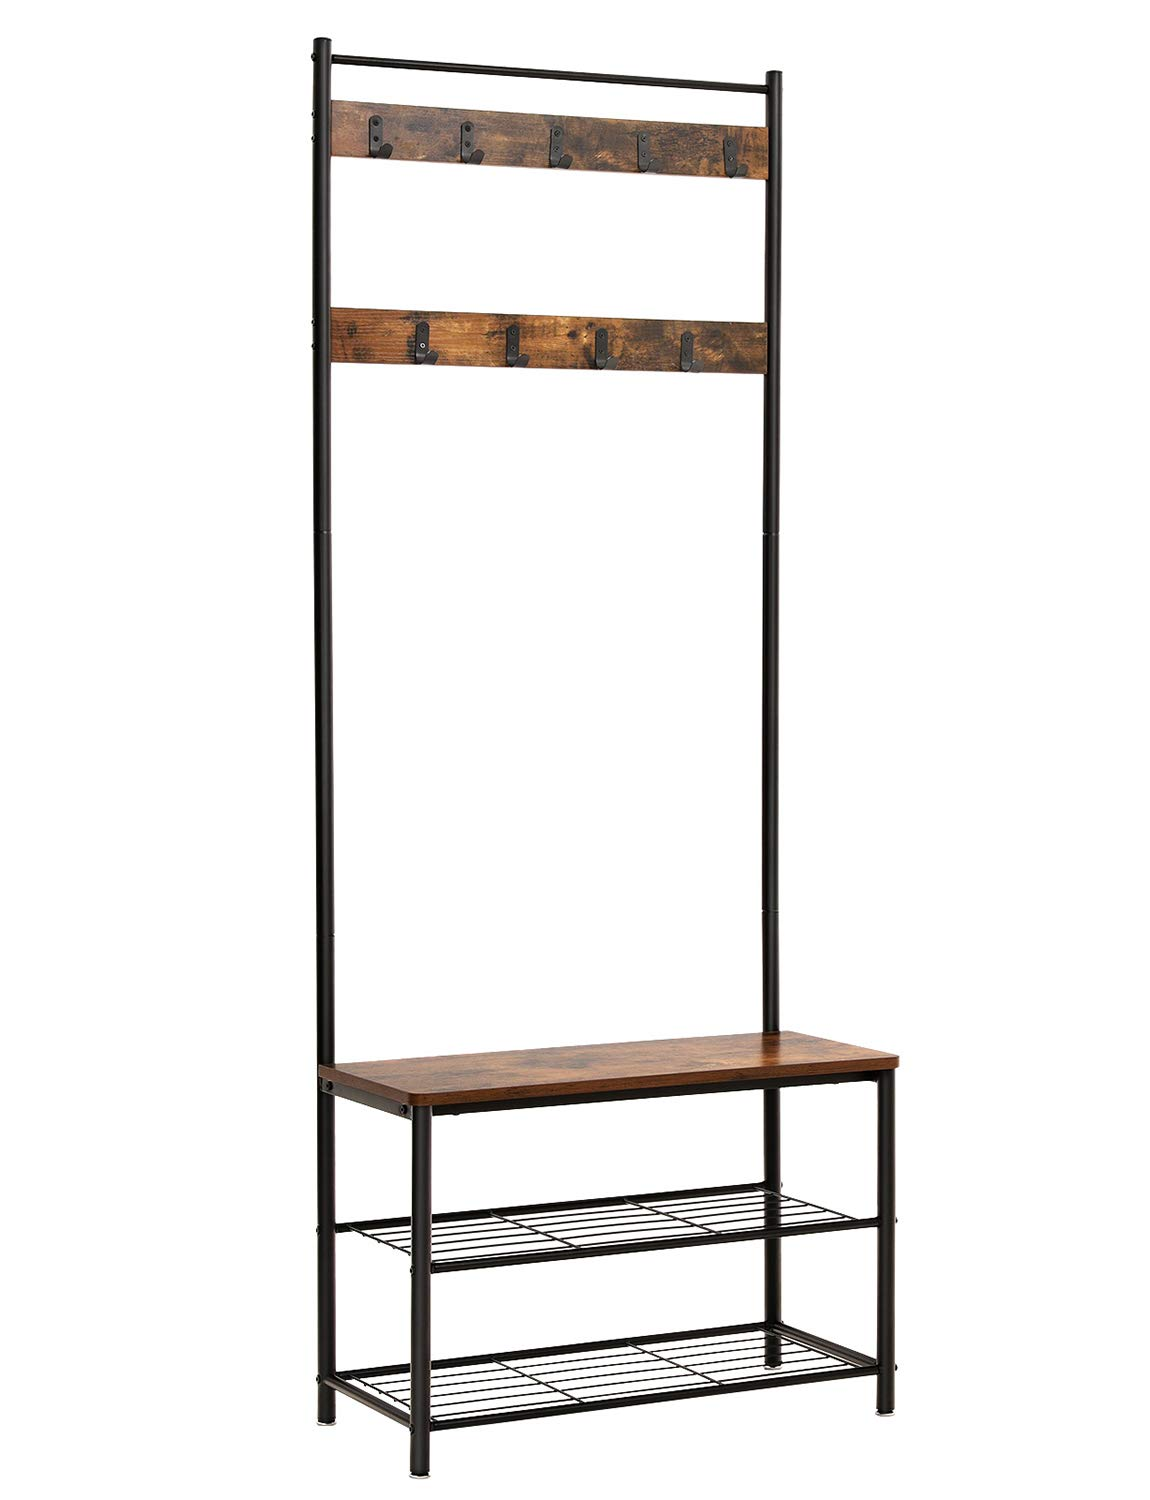 VASAGLE Industrial Coat Rack, Hall Tree Entryway Shoe Bench, Storage Shelf Organizer, Accent Furniture with Metal Frame UHSR41BX, Rustic Brown by VASAGLE